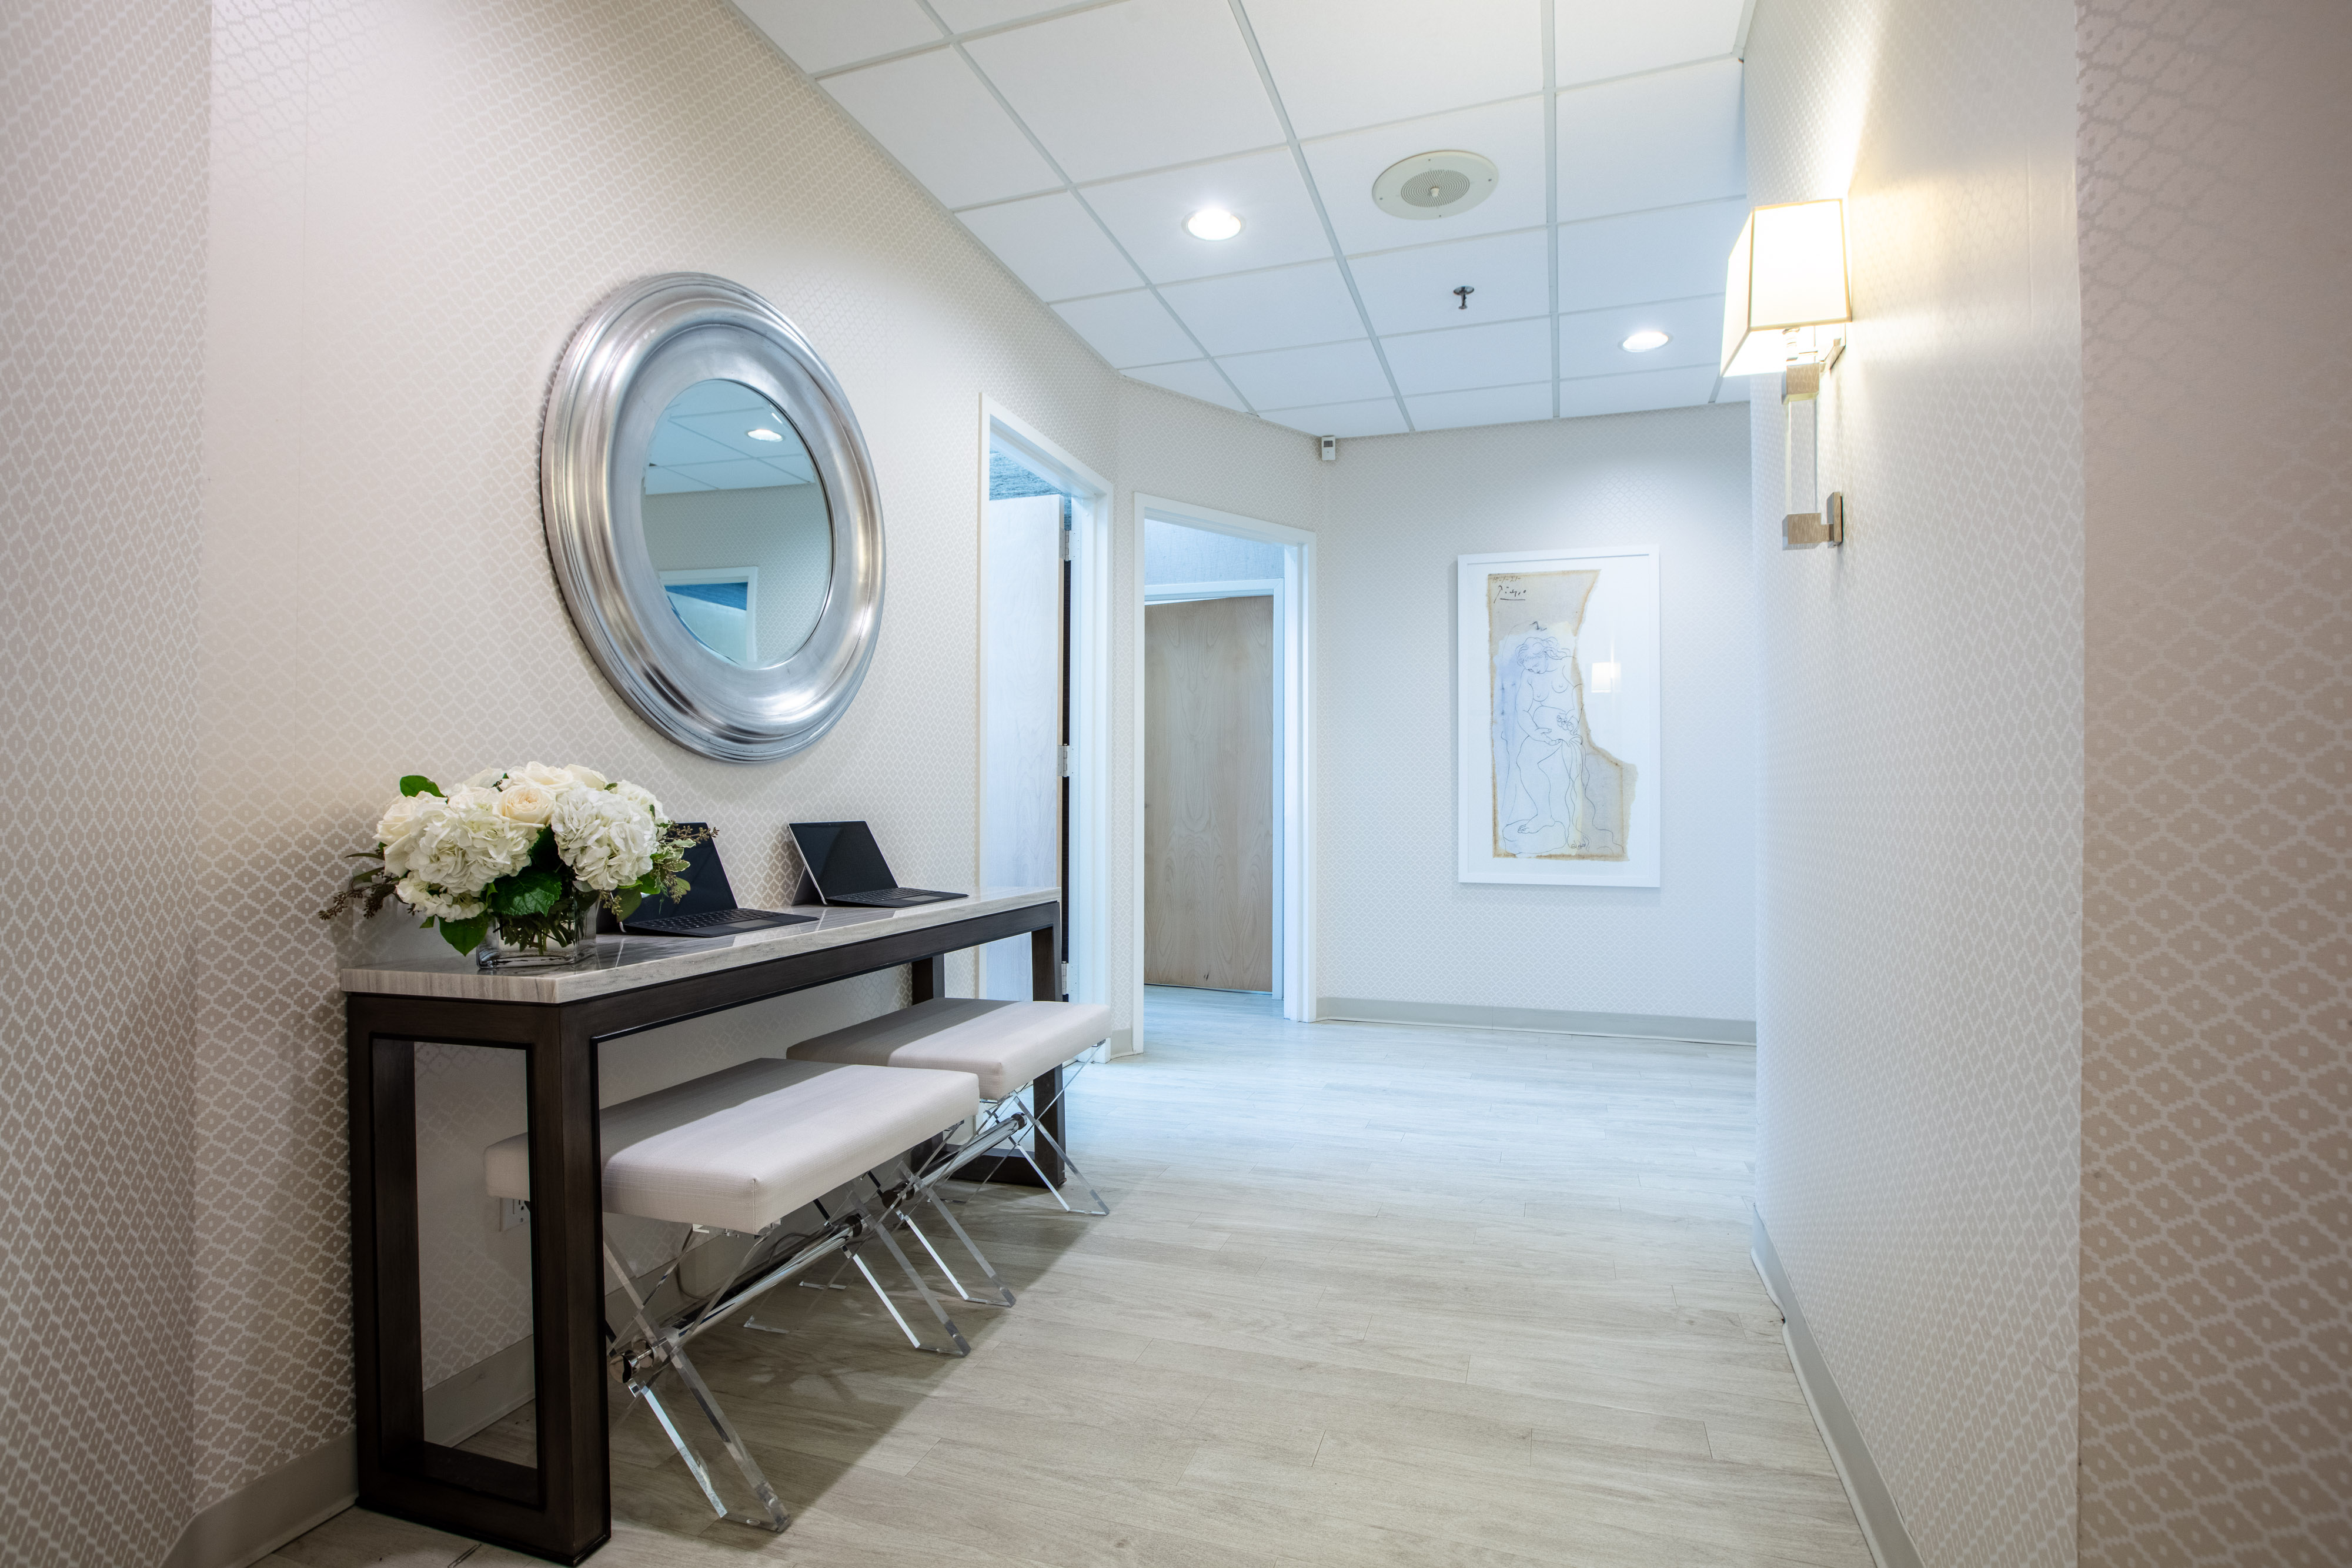 North Shore Cosmetic Surgery